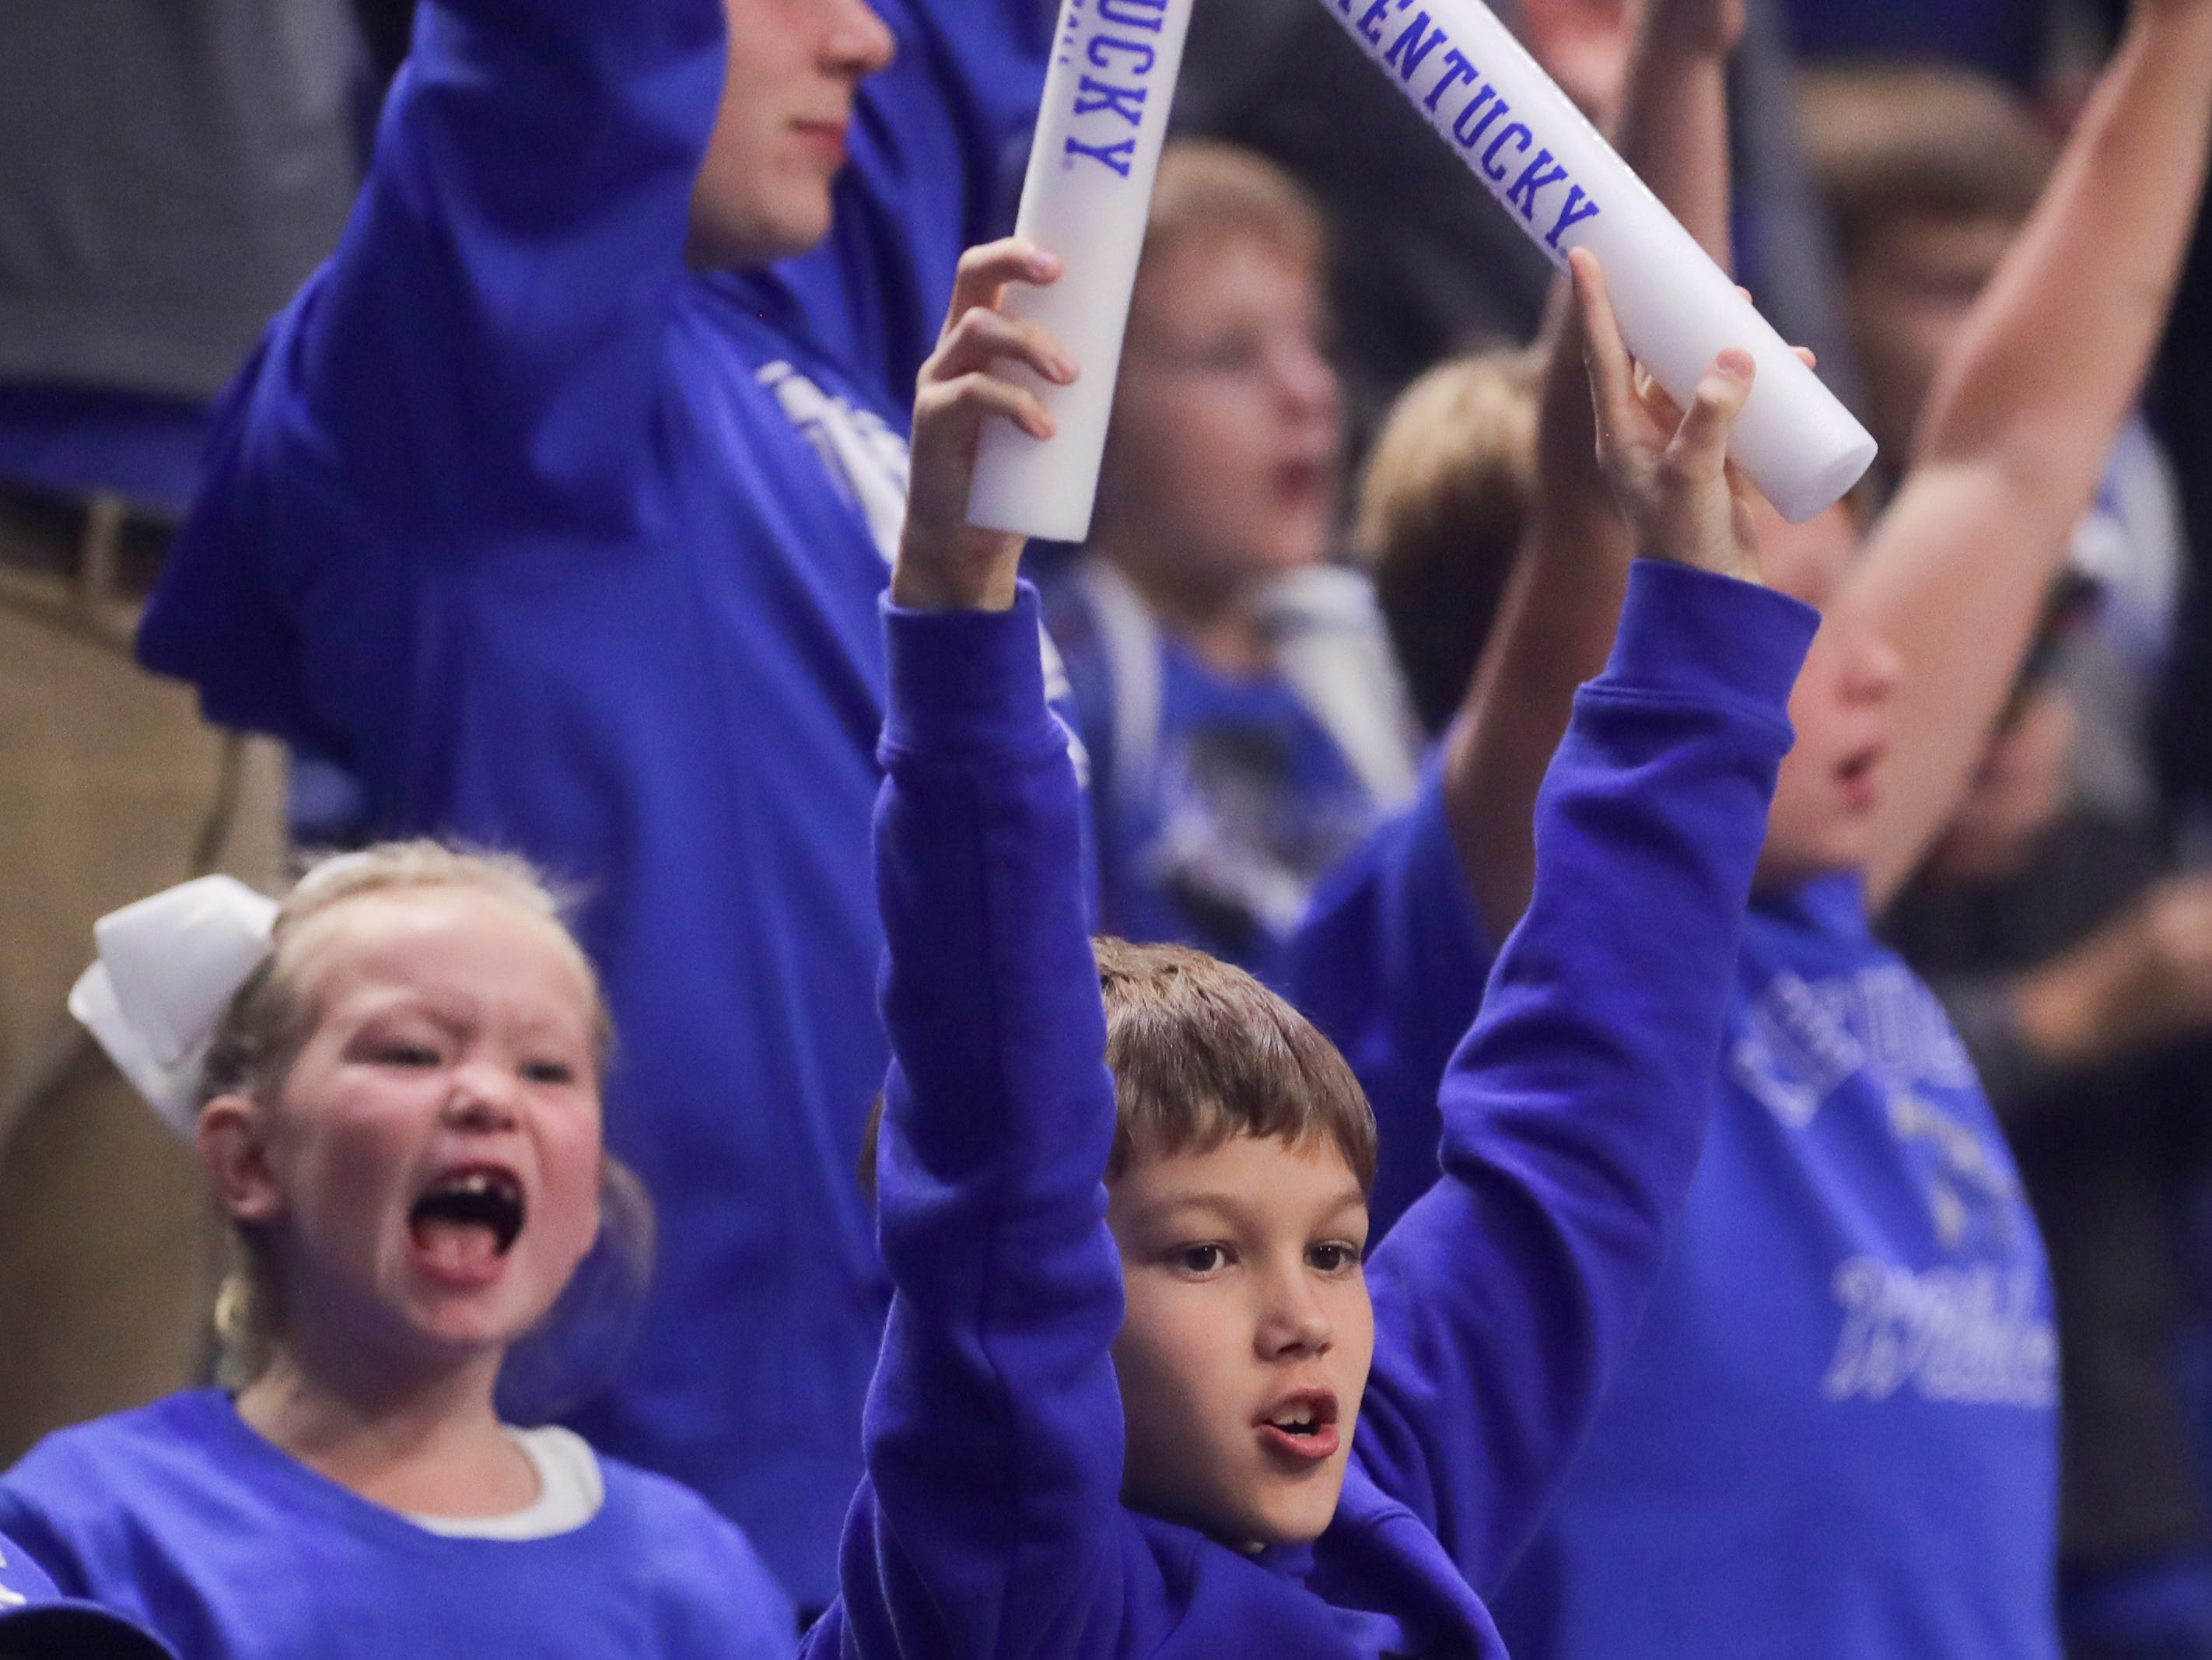 Fans cheer on the team at Big Blue Madness in Lexington, Kentucky.